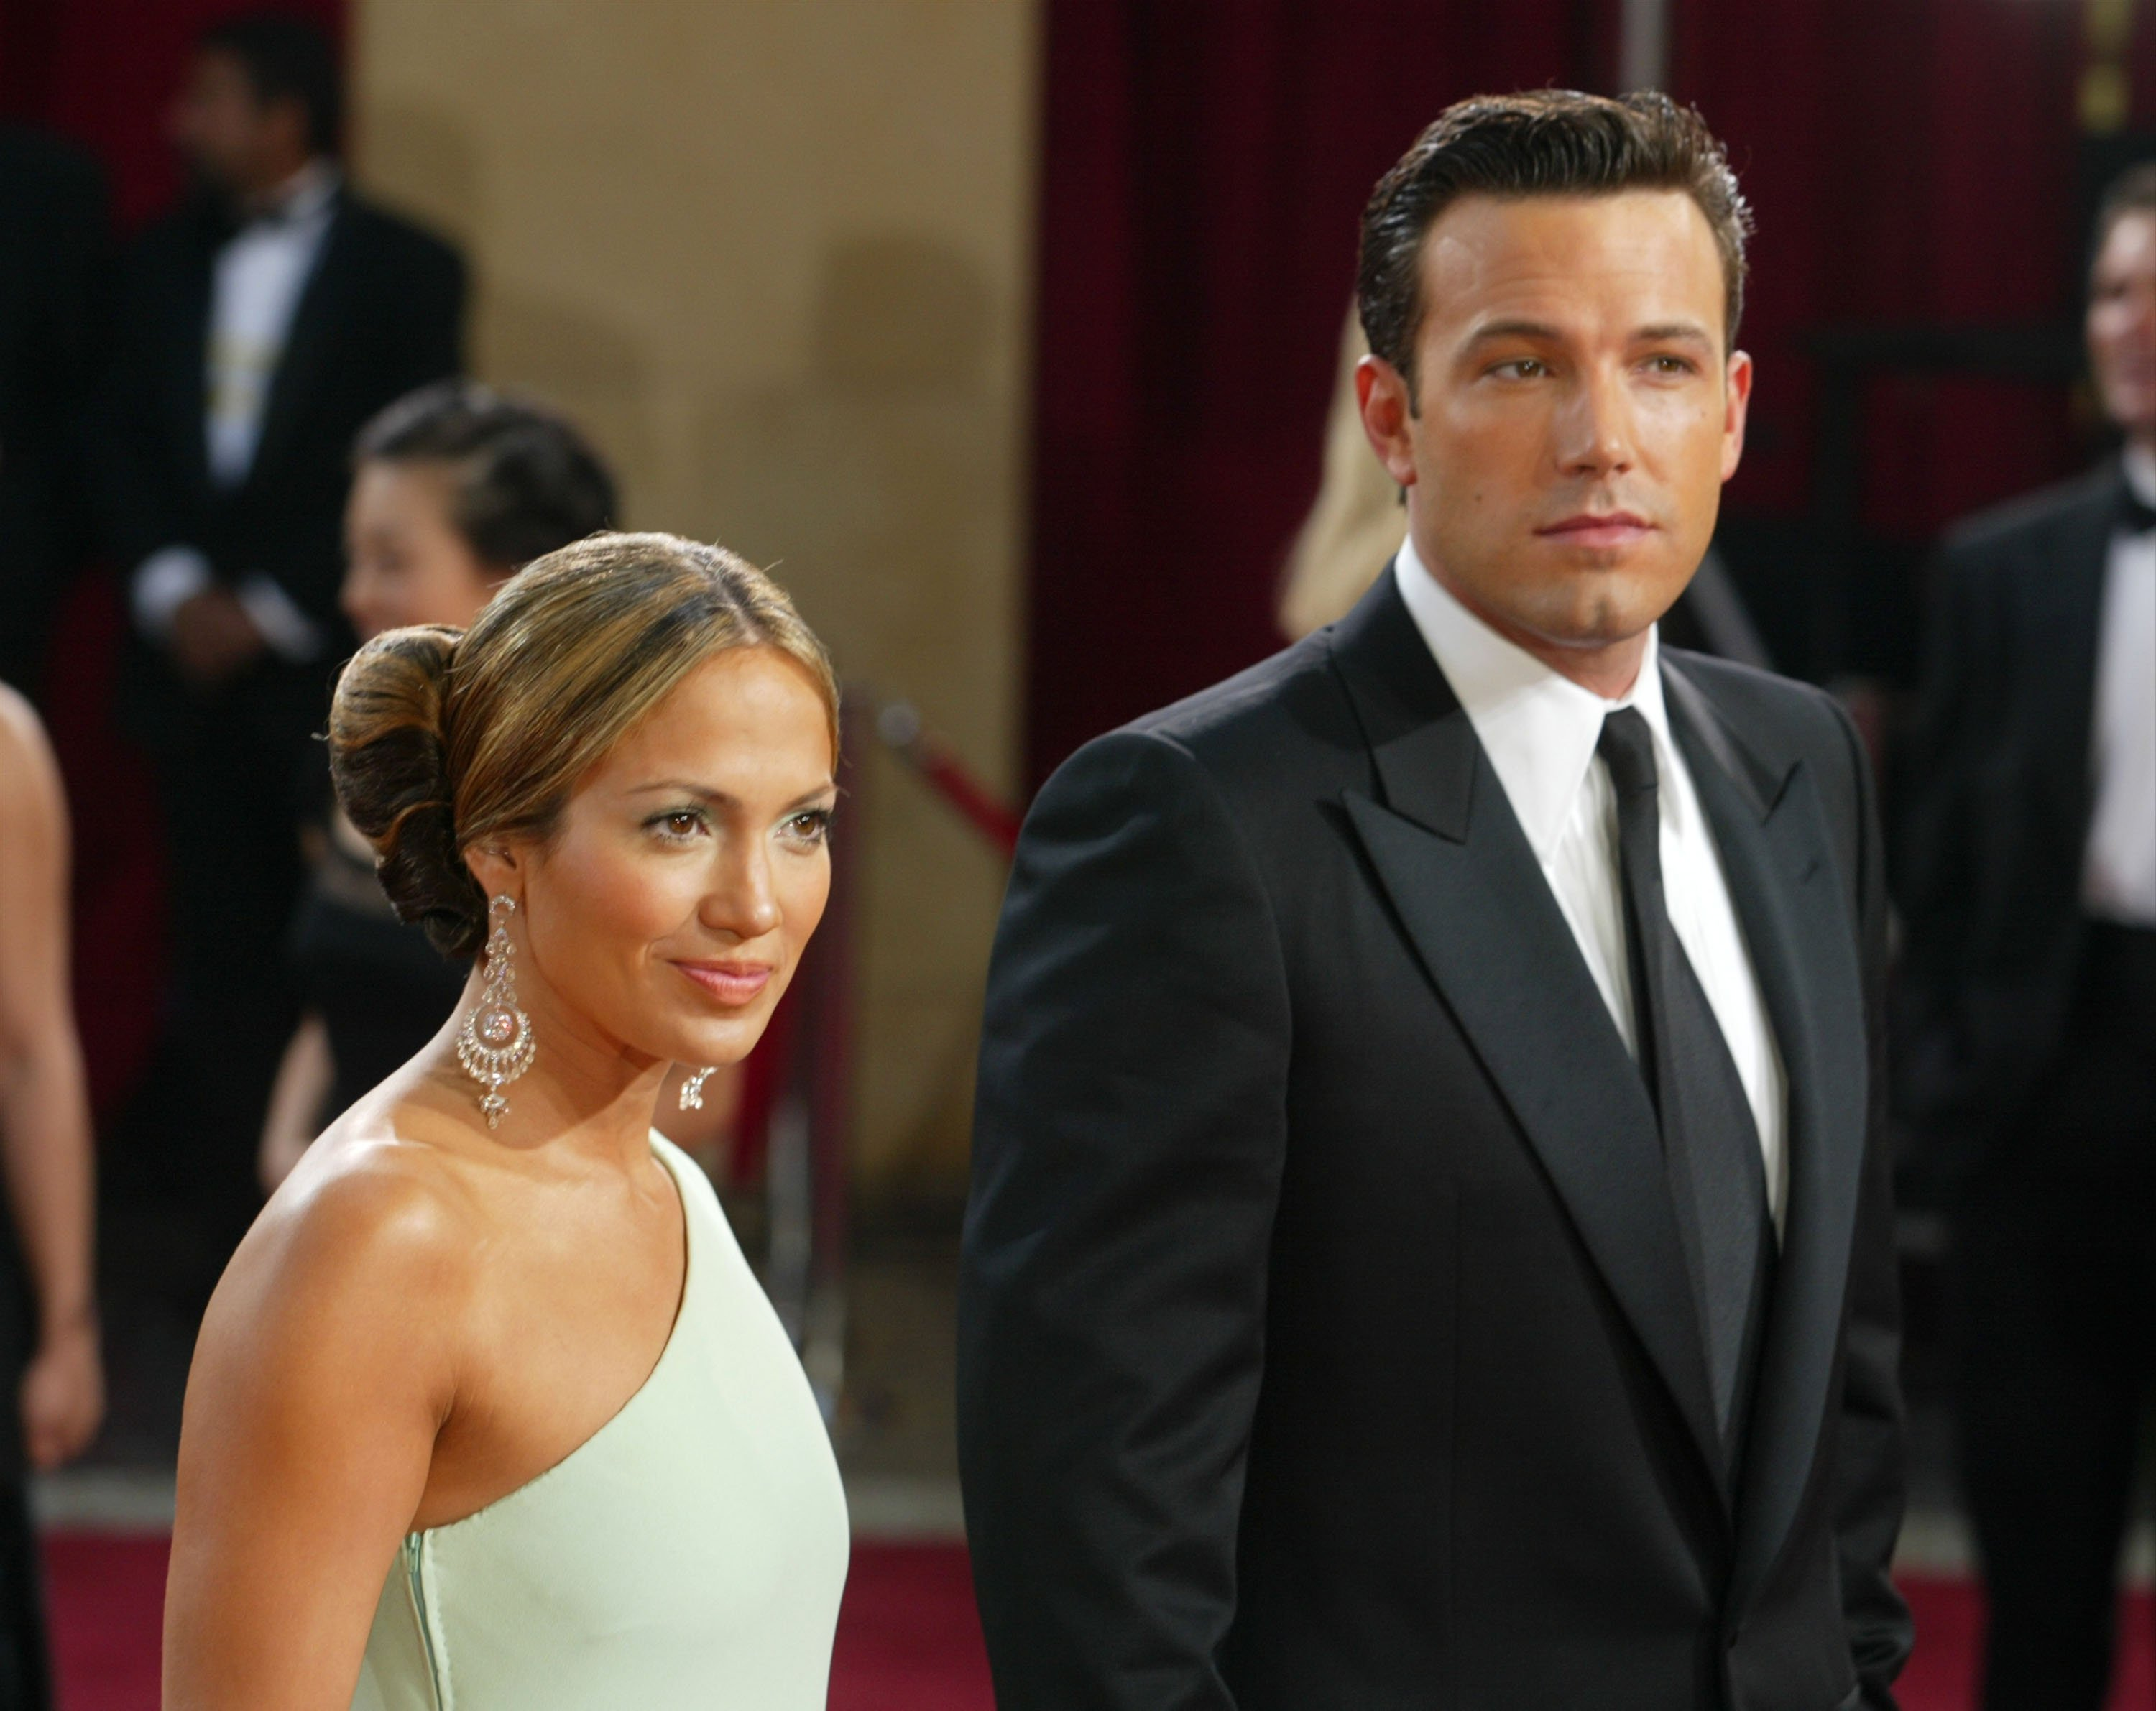 Ben Affleck and Jennifer Lopez attend the 75th Annual Academy Awards on March 23, 2003.   Photo: Getty Images